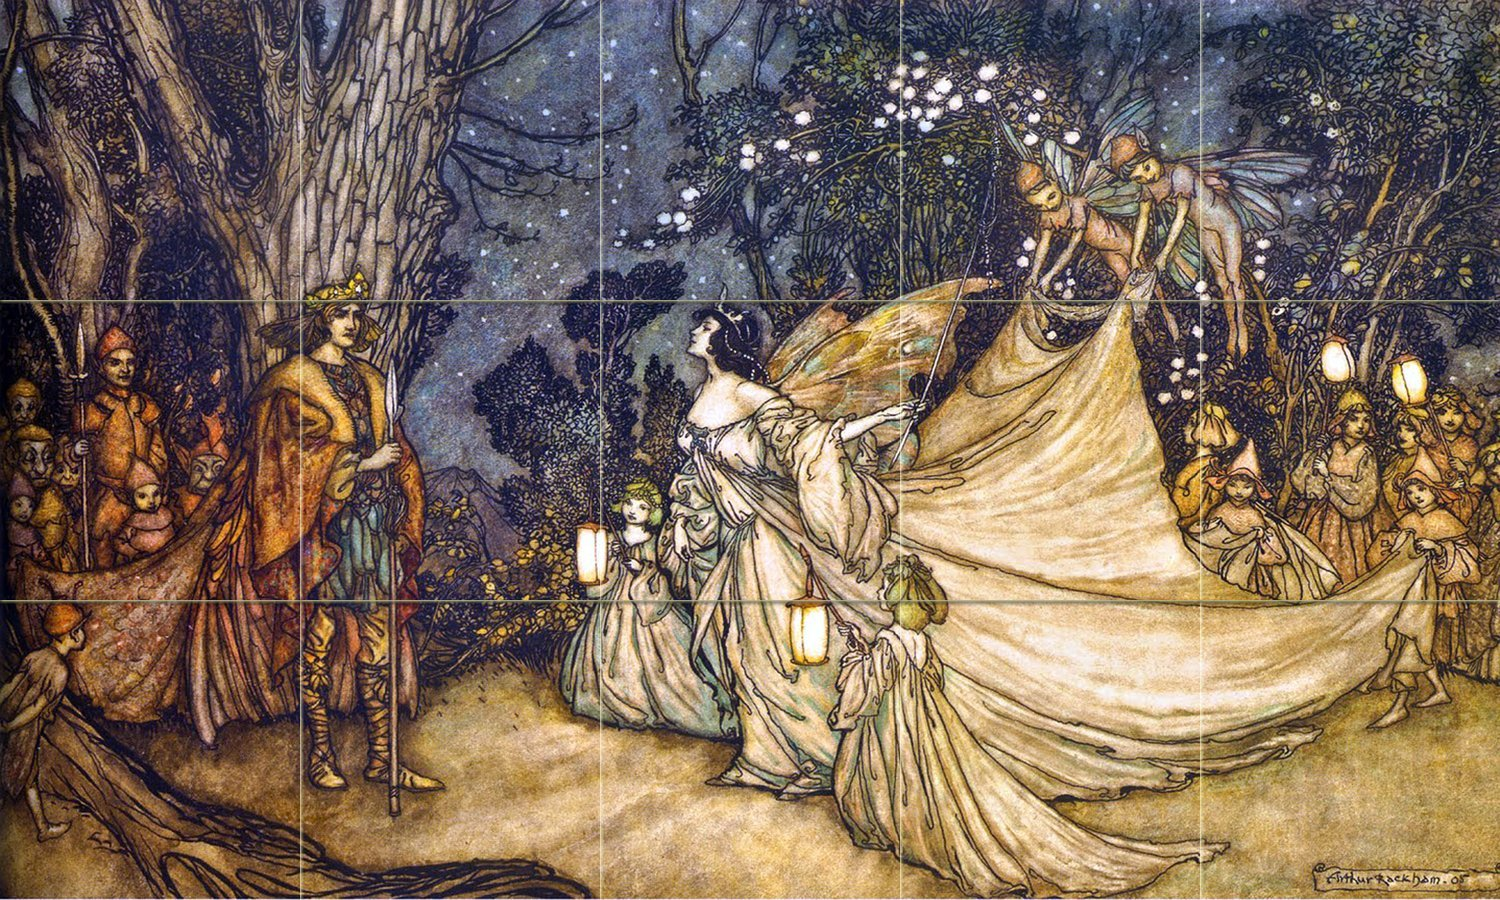 Midsummer Night's Dream in the Forest by Arthur Rackham Tile Mural Kitchen Bathroom Wall Backsplash Behind Stove Range Sink Splashback 5x3 4'' Marble, Matte